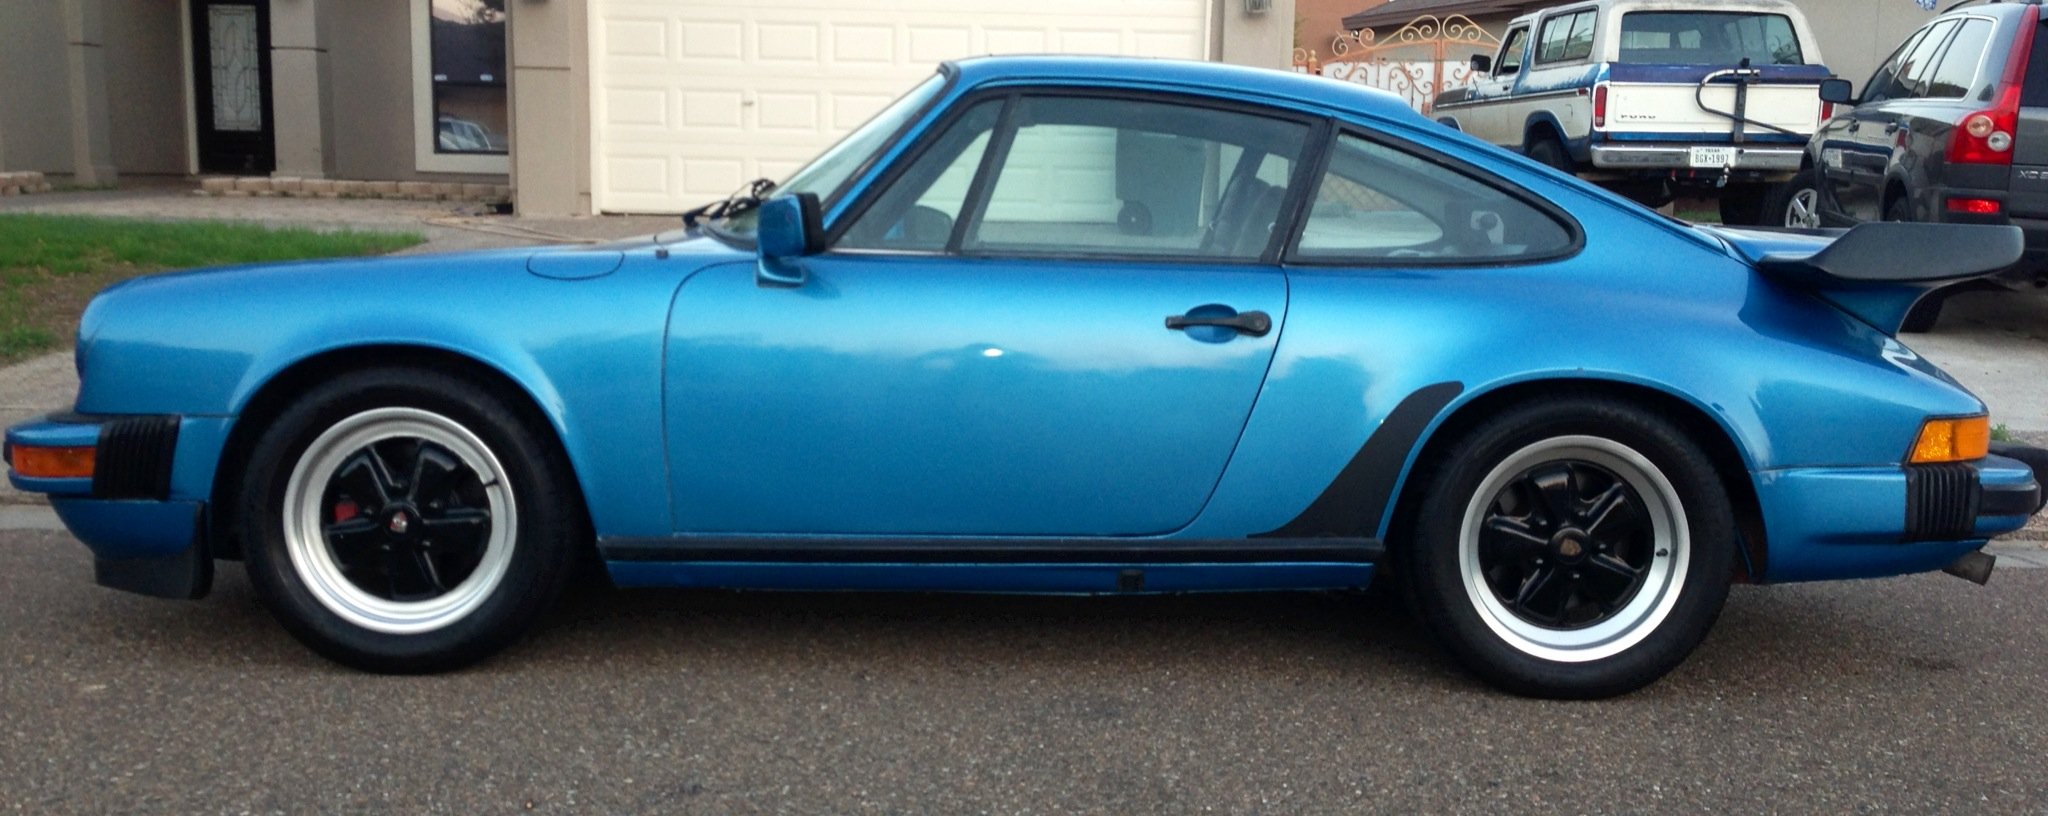 view topic two classic 1978 porsche 911 sc up for sale in laredo texas. Black Bedroom Furniture Sets. Home Design Ideas